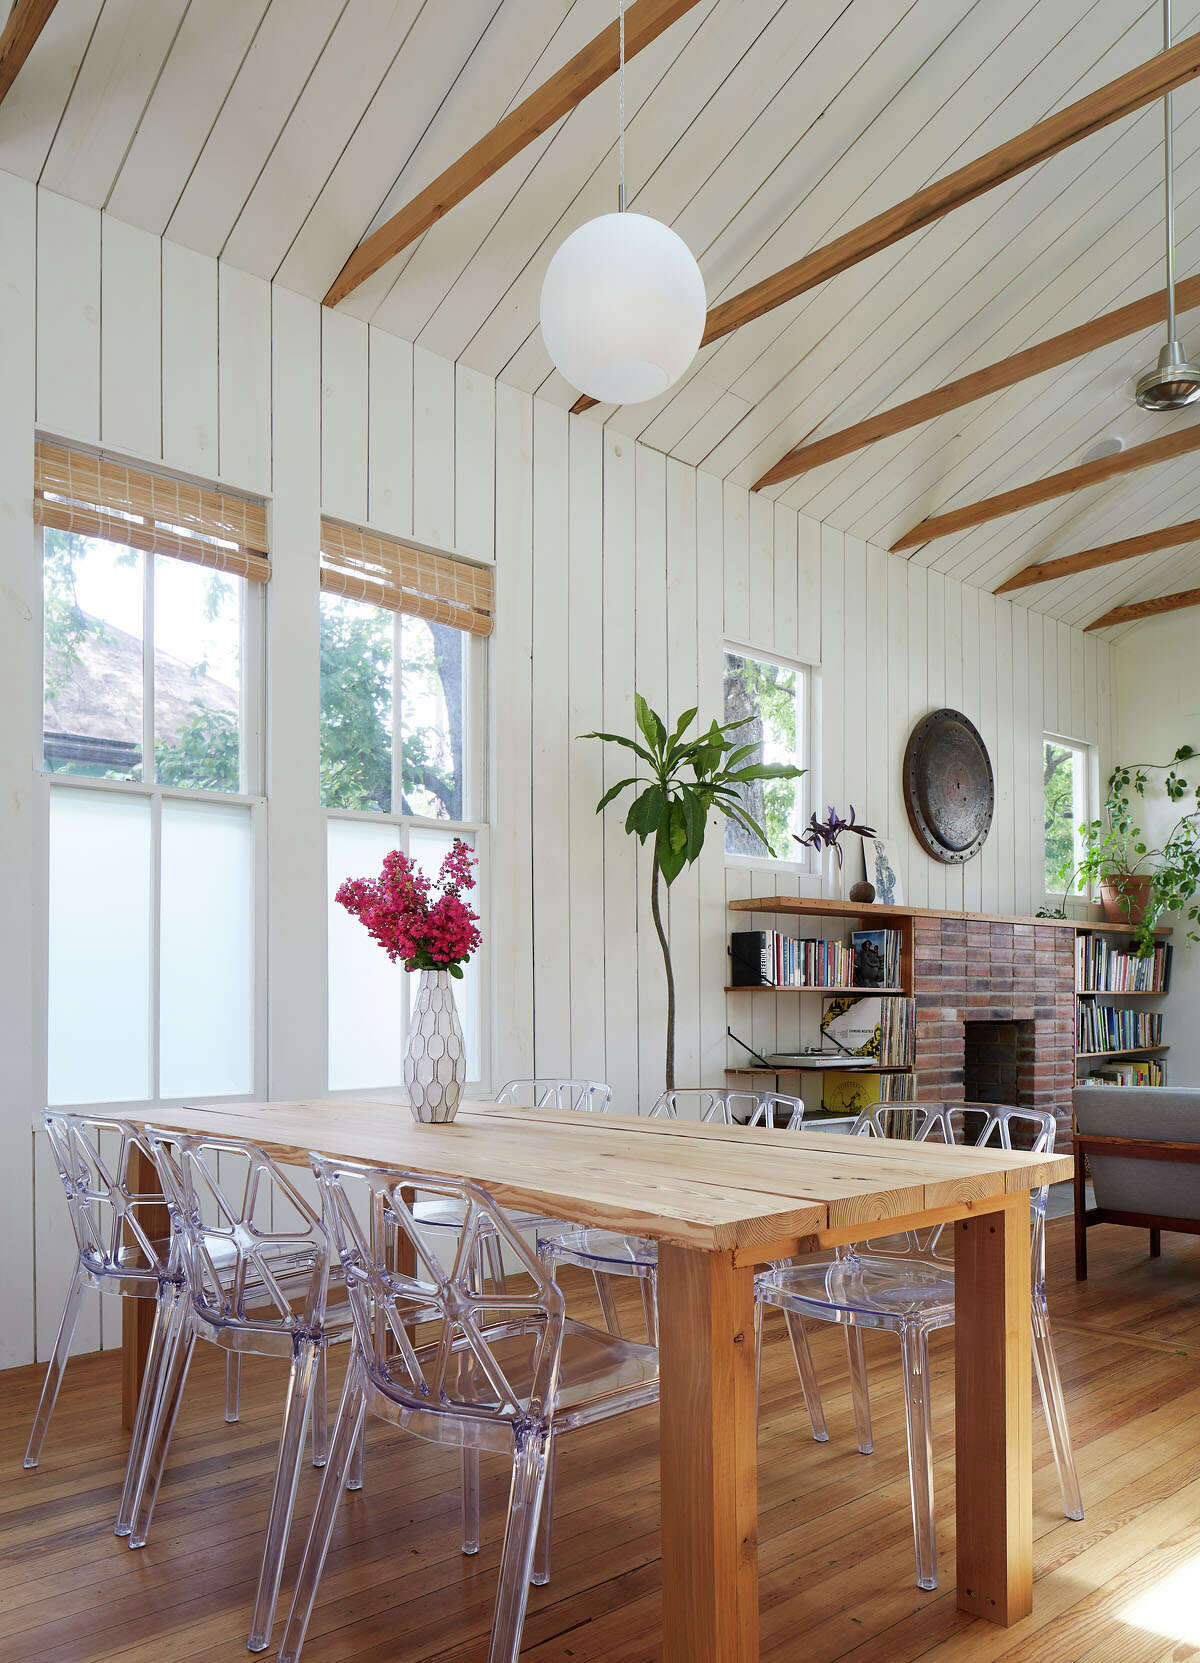 The dining room table was made of wood reclaimed from another part of the house.